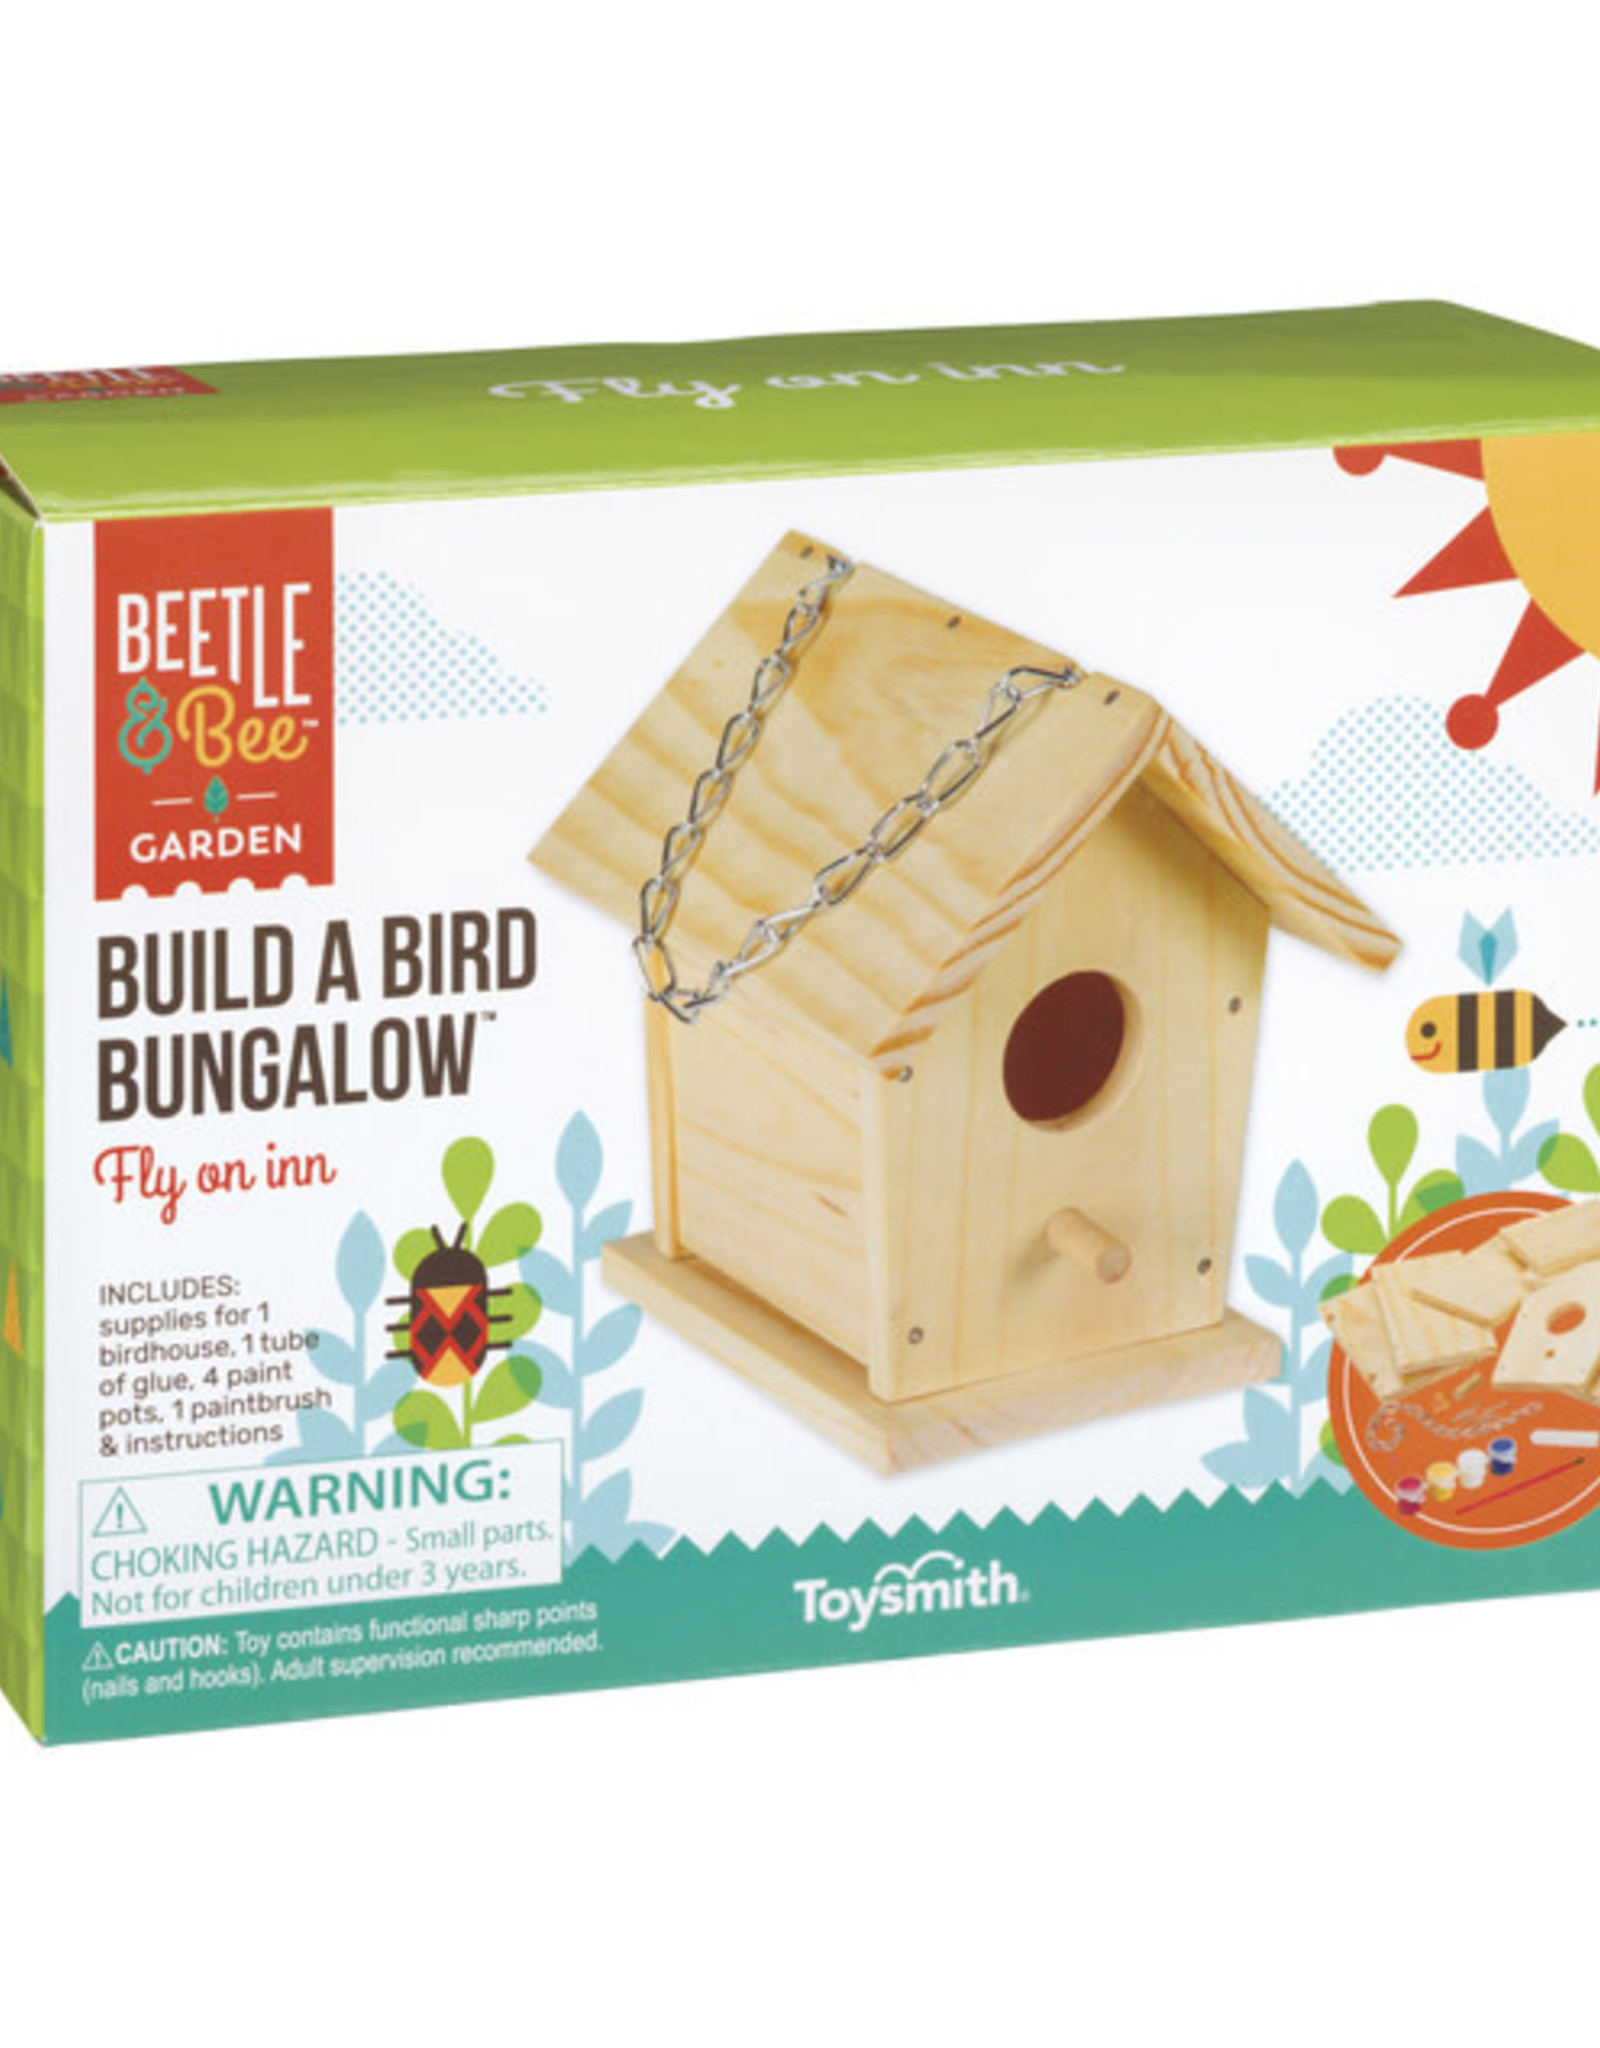 Toysmith Build and Paint a Bird Bungalow